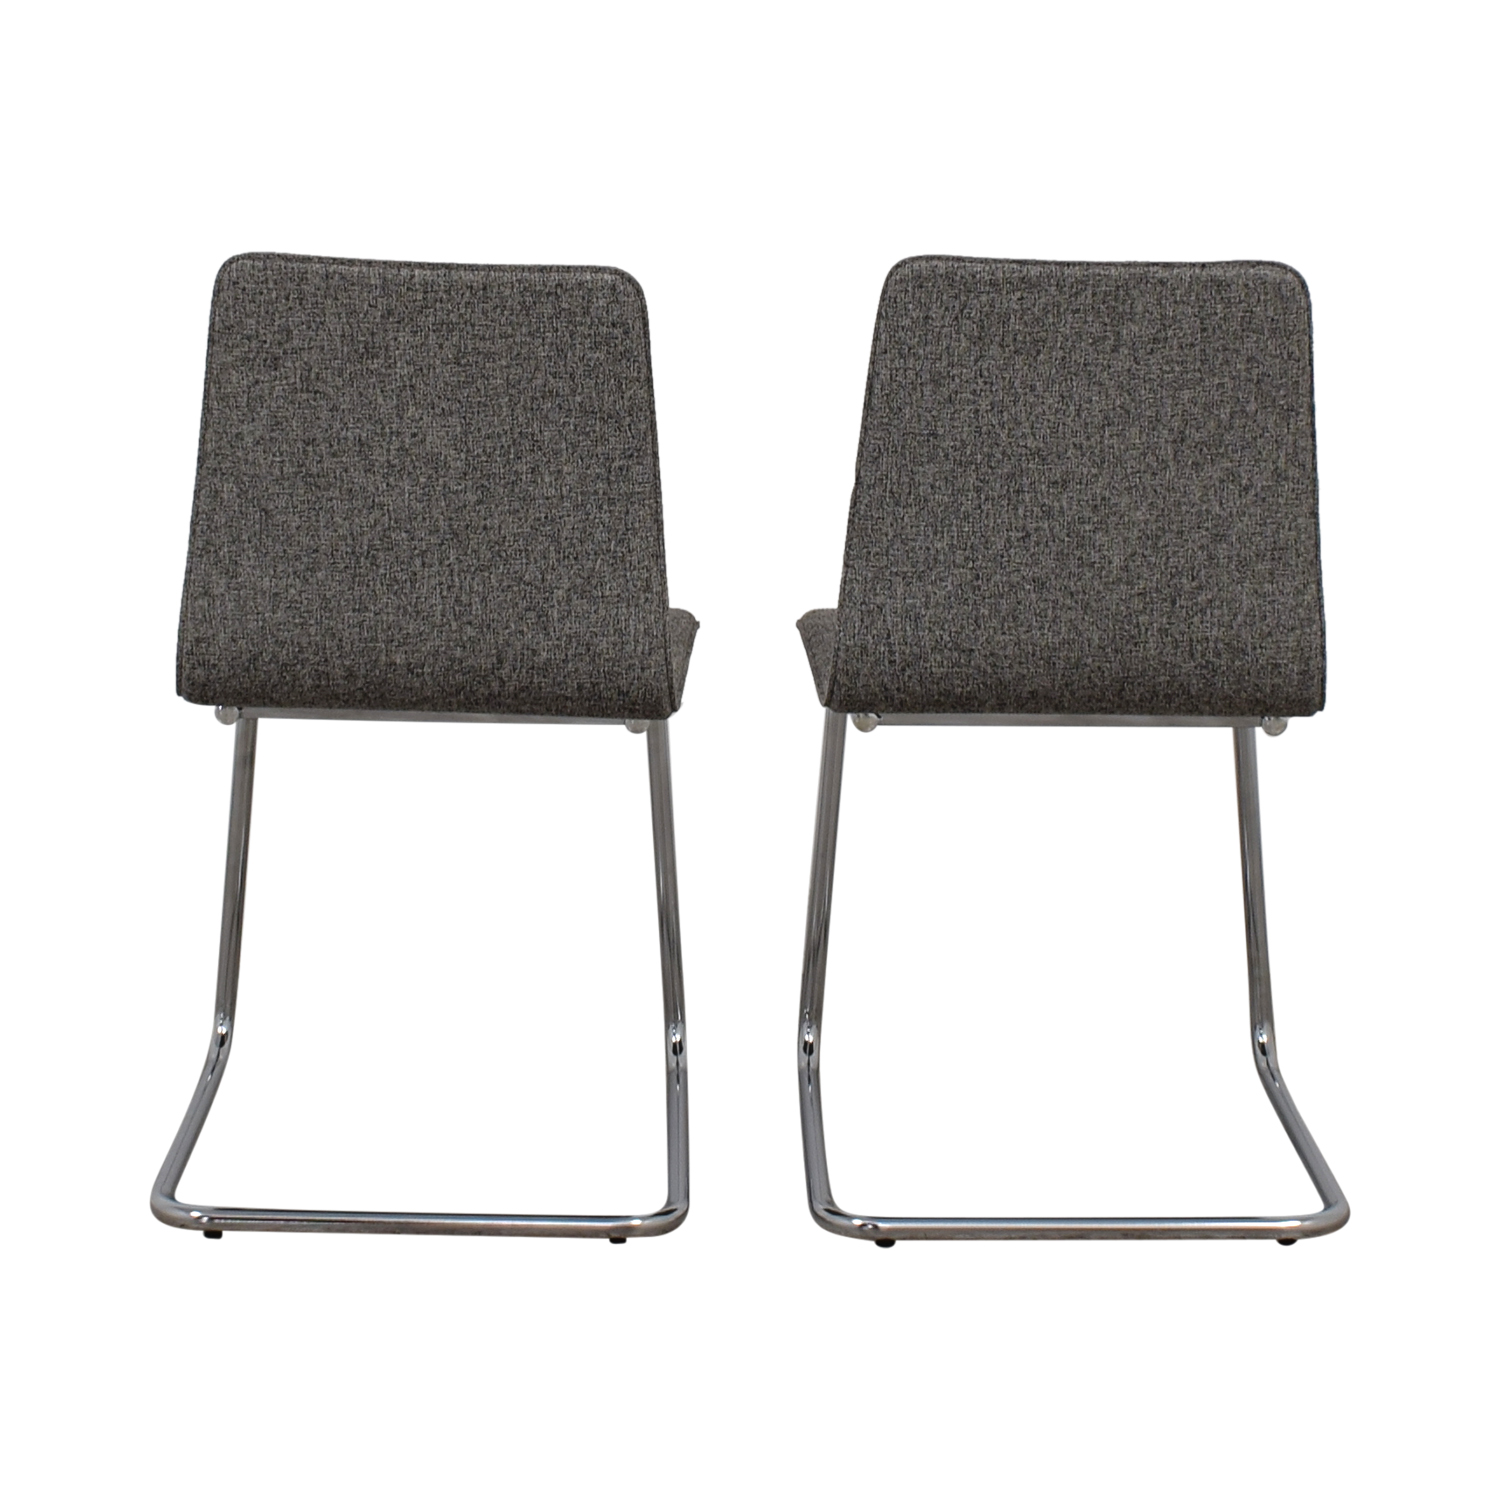 Superbe Shop CB2 Pony Grey Tweed Chairs CB2 Dining Chairs